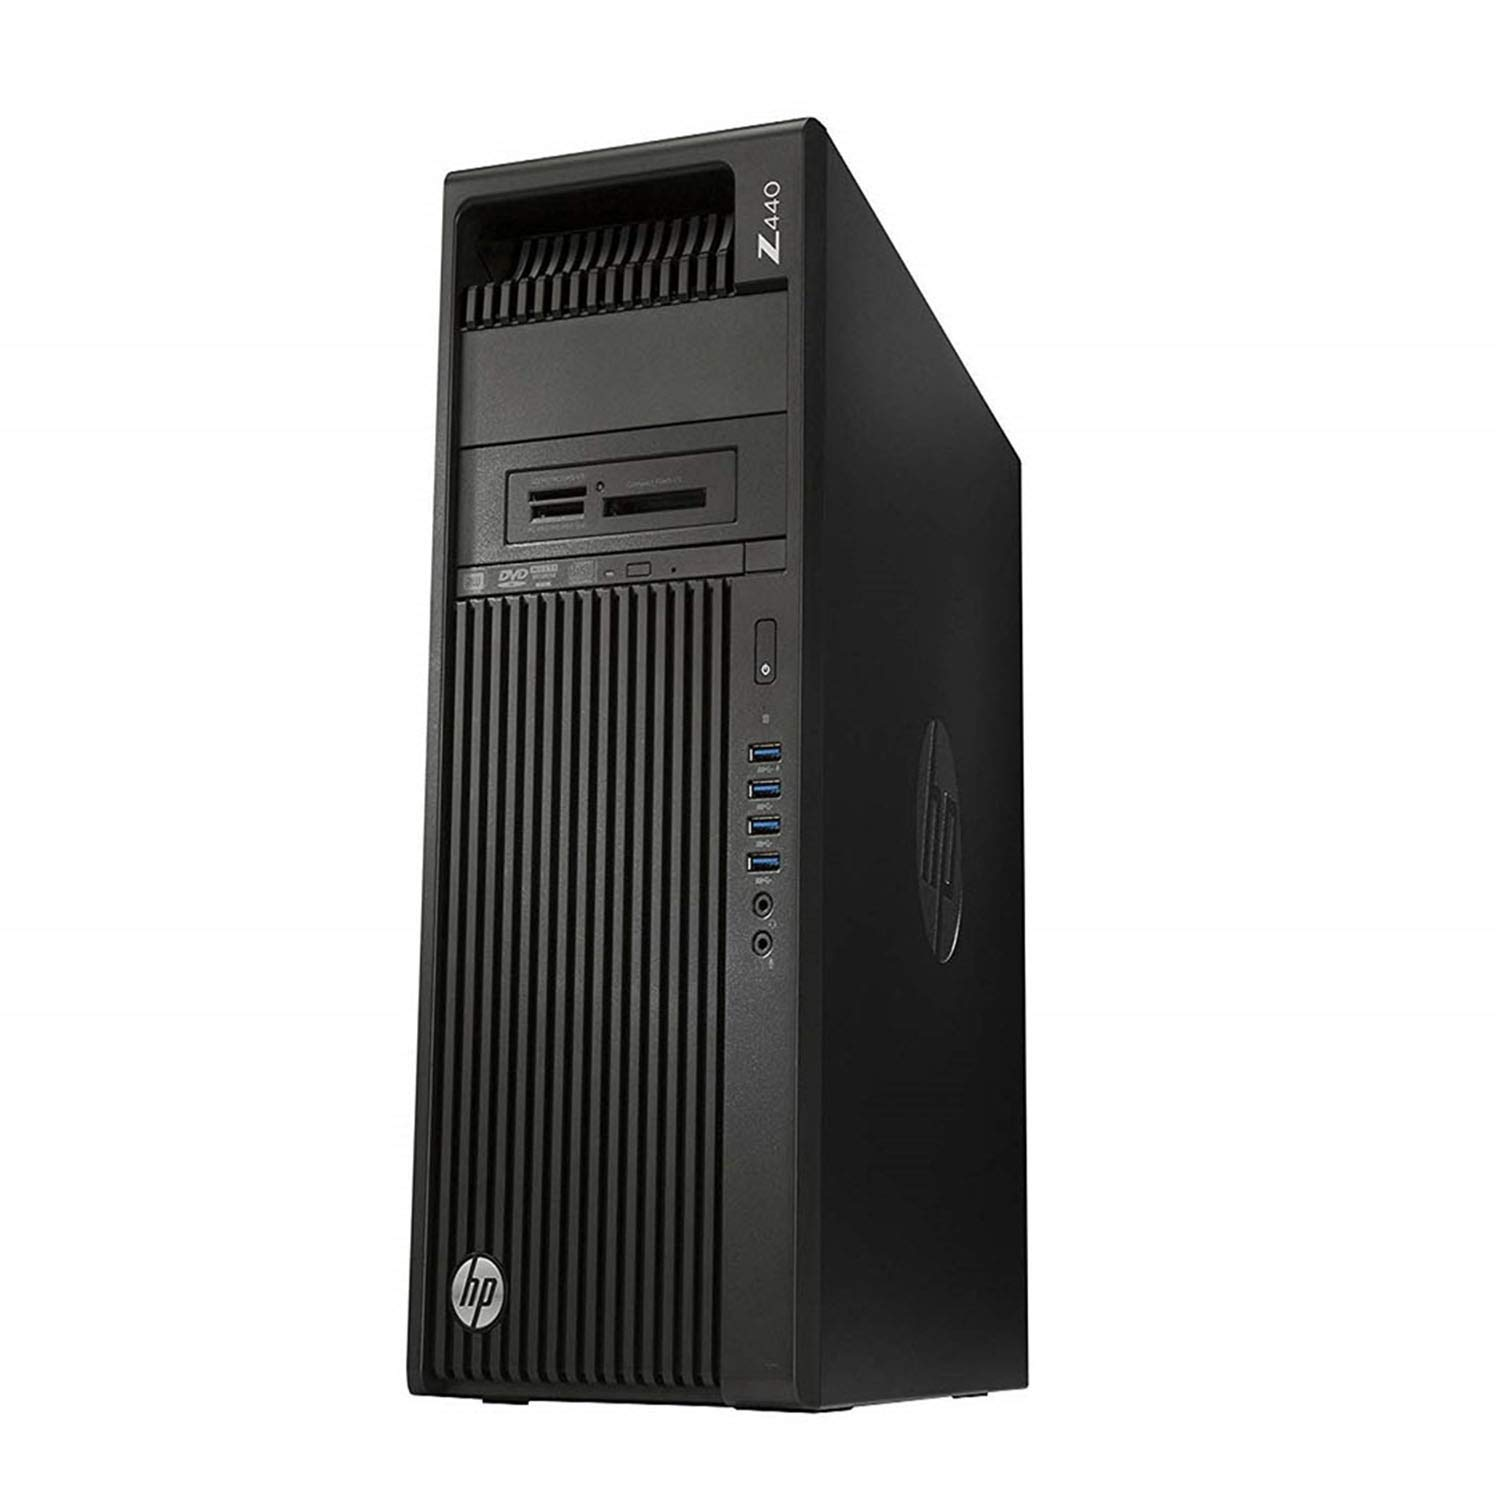 人気No.1 HP 64GB Z440 Premium Gigabit School and Business Pro) Tower Workstation Desktop PC (Intel Xeon E5-1603V4 Quad-Core, 64GB RAM, 512GB Sata SSD, DVD, Gigabit Ethernet, Win 10 Pro) B07HPFH771 3TB HDD + 2TB SSD 3TB HDD + 2TB SSD|64GB RAM | Win 10 Pro, リムステッカーの飾屋:2e86c262 --- svecha37.ru